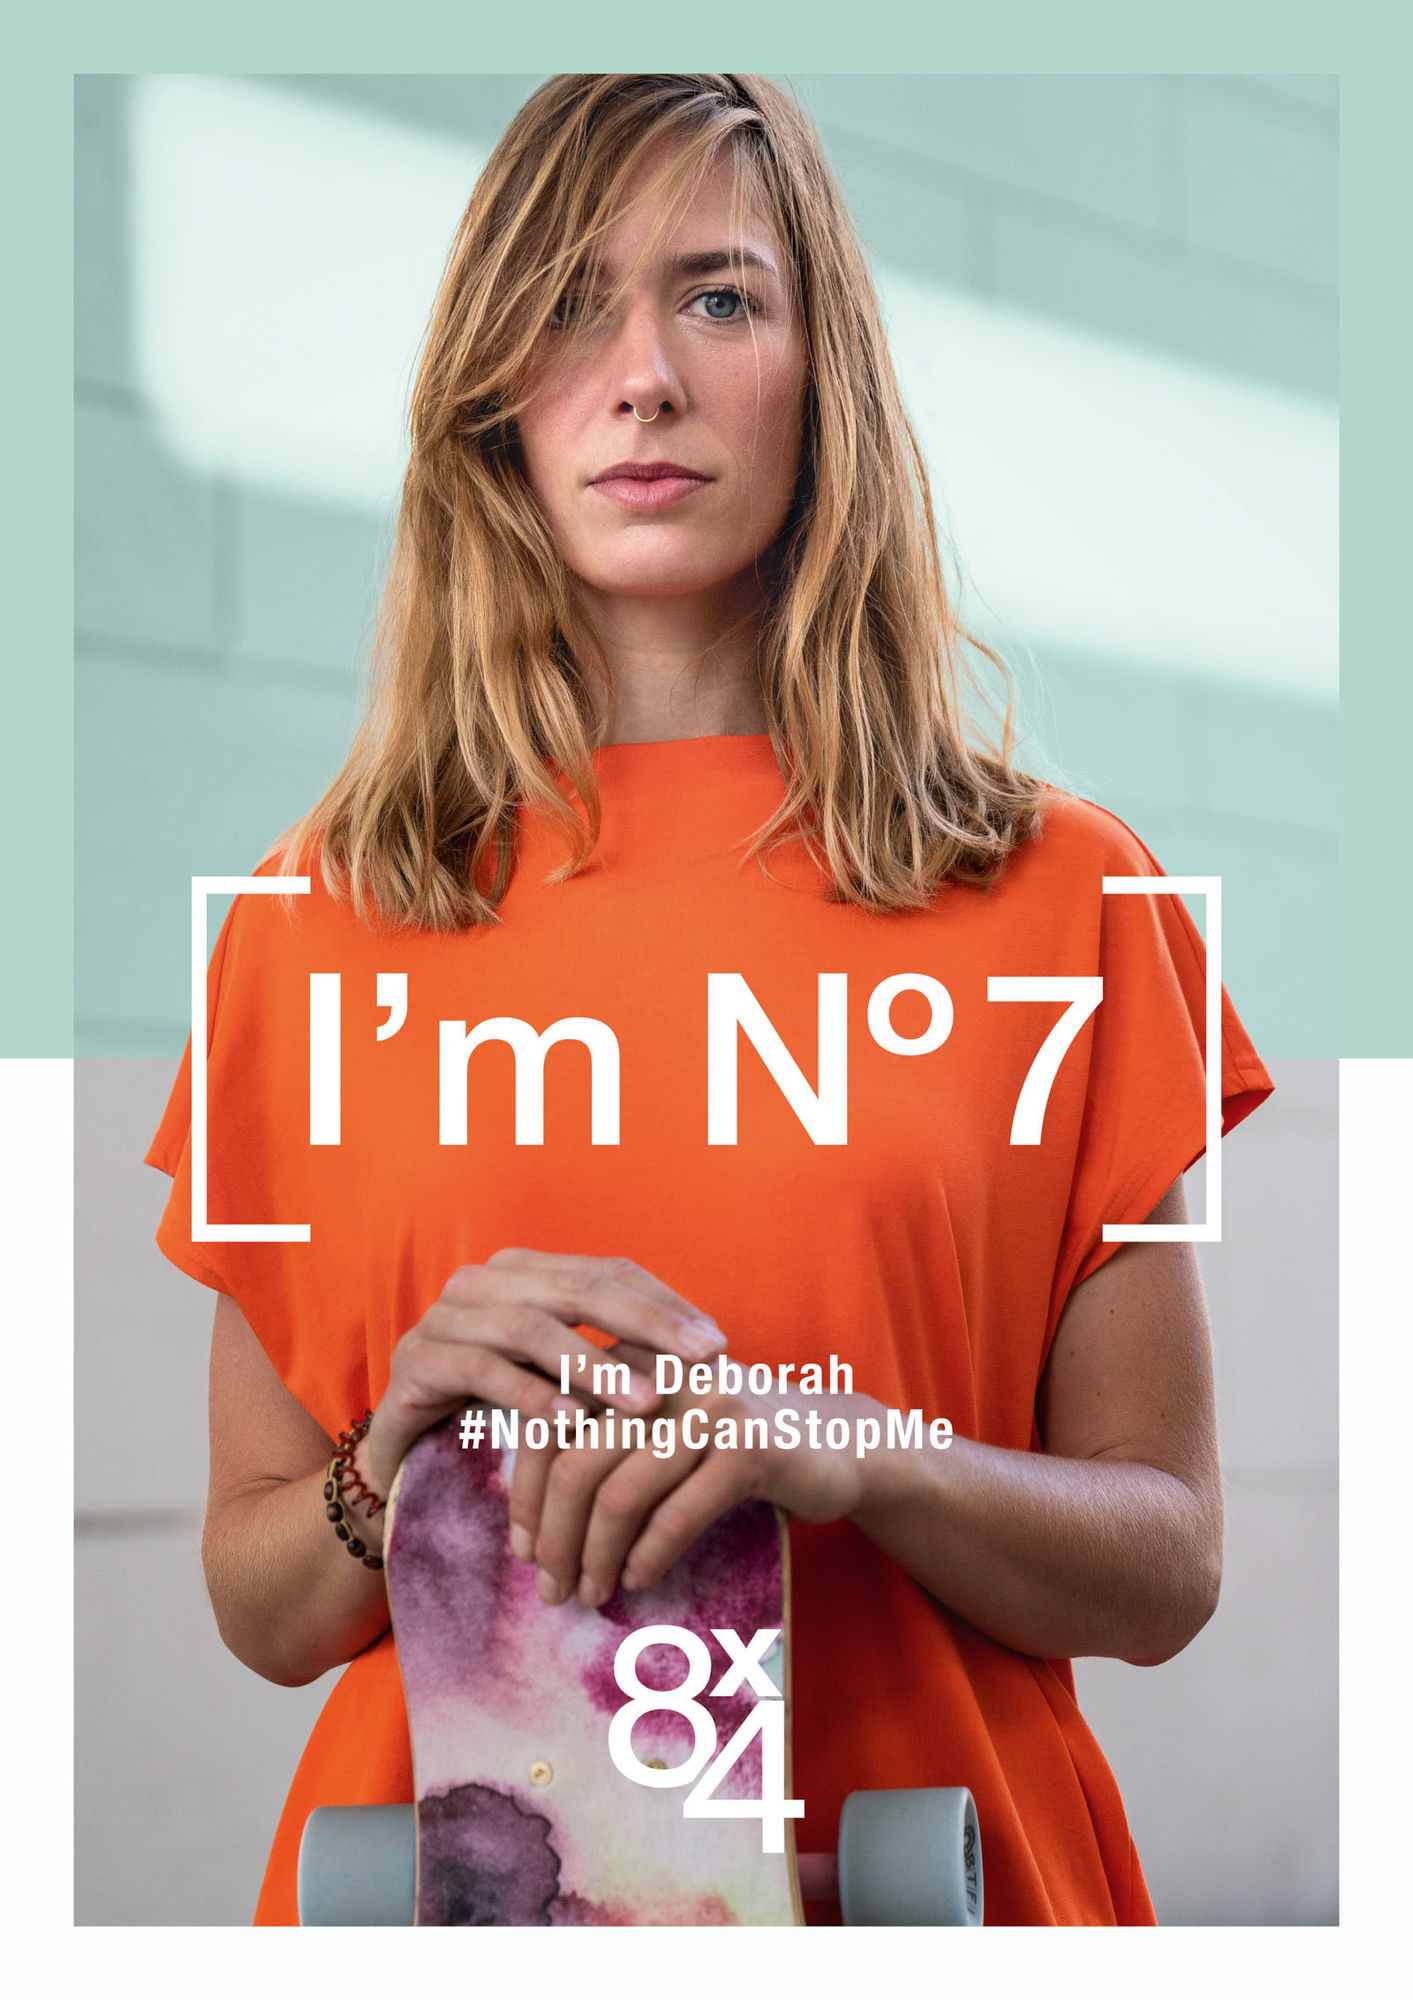 8×4 Campaign by Jim GRAMMING c/o MARLENE OHLSSON AGENCY